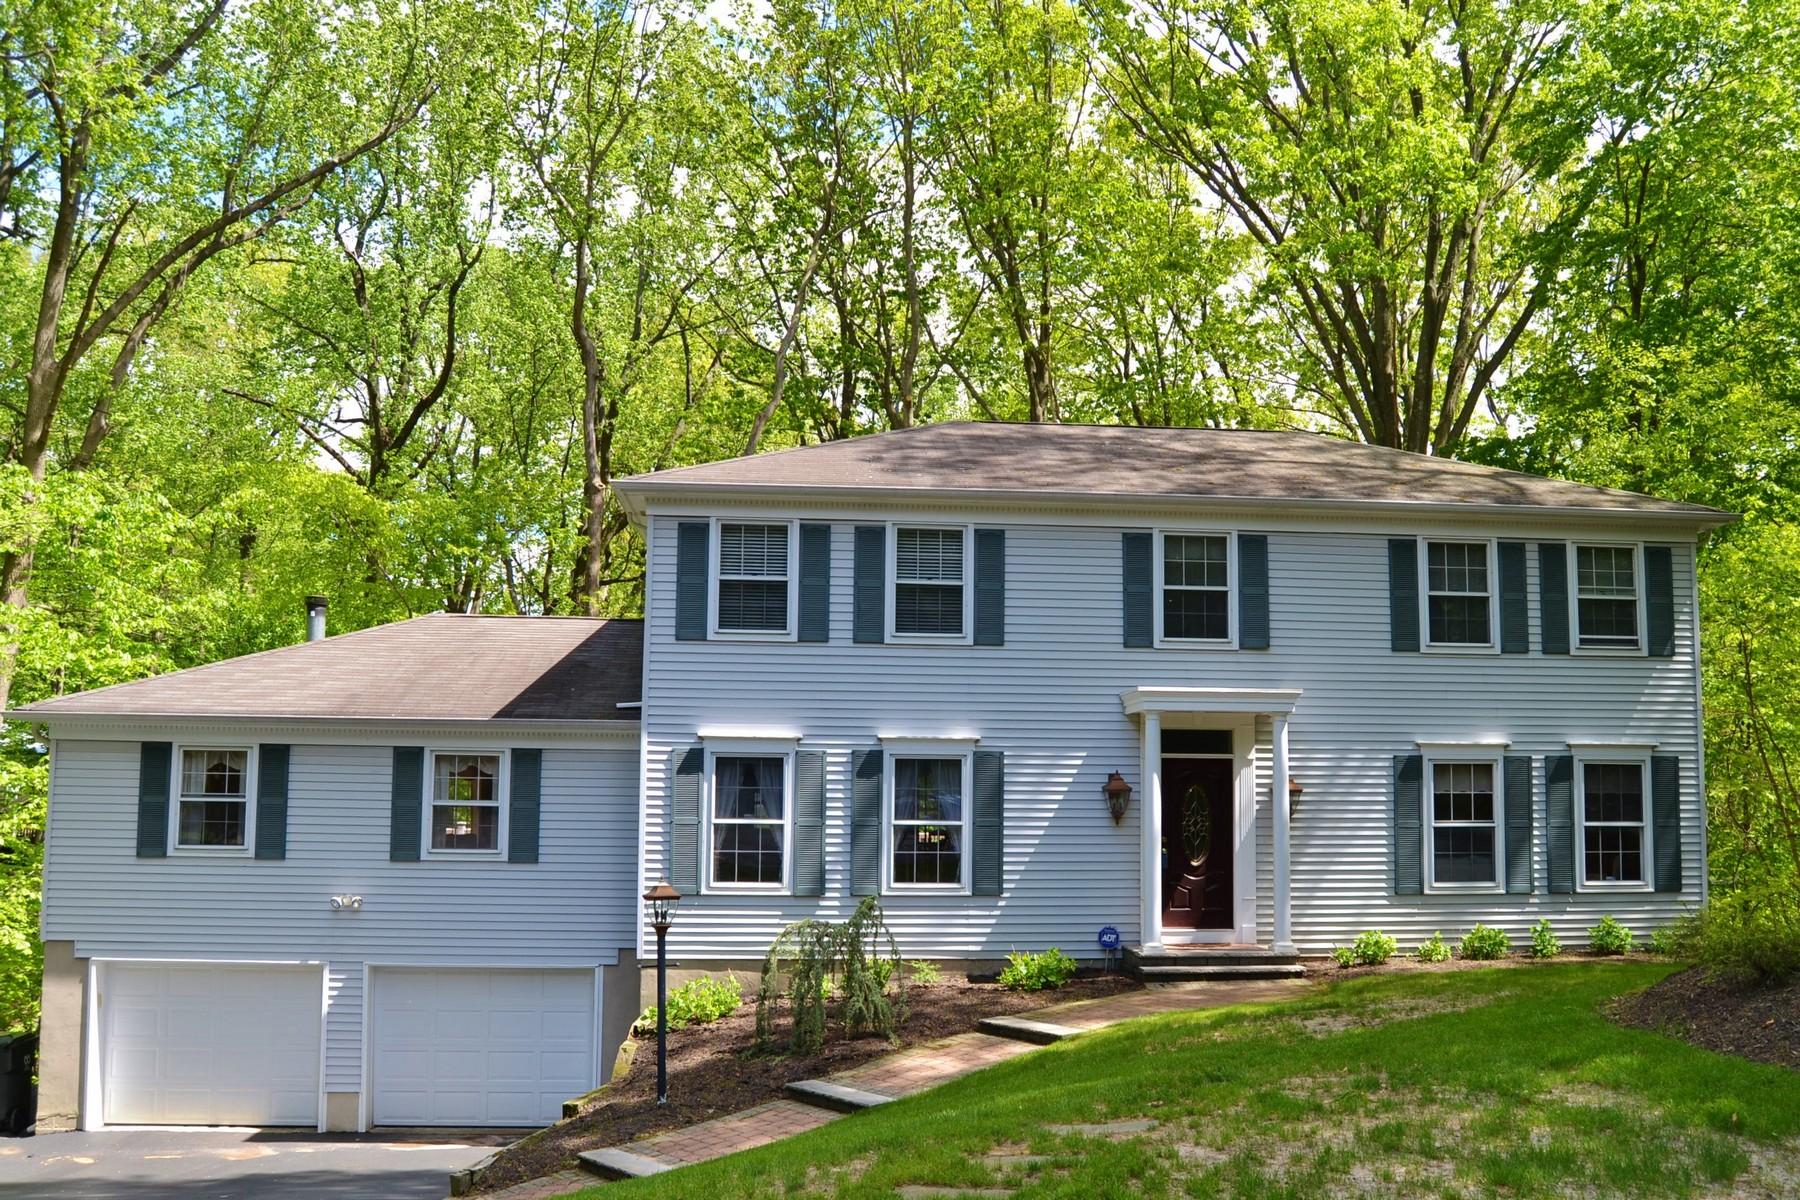 Single Family Home for Sale at Spacious center hall colonial 25 Lionel Court Middletown, New Jersey, 07748 United States